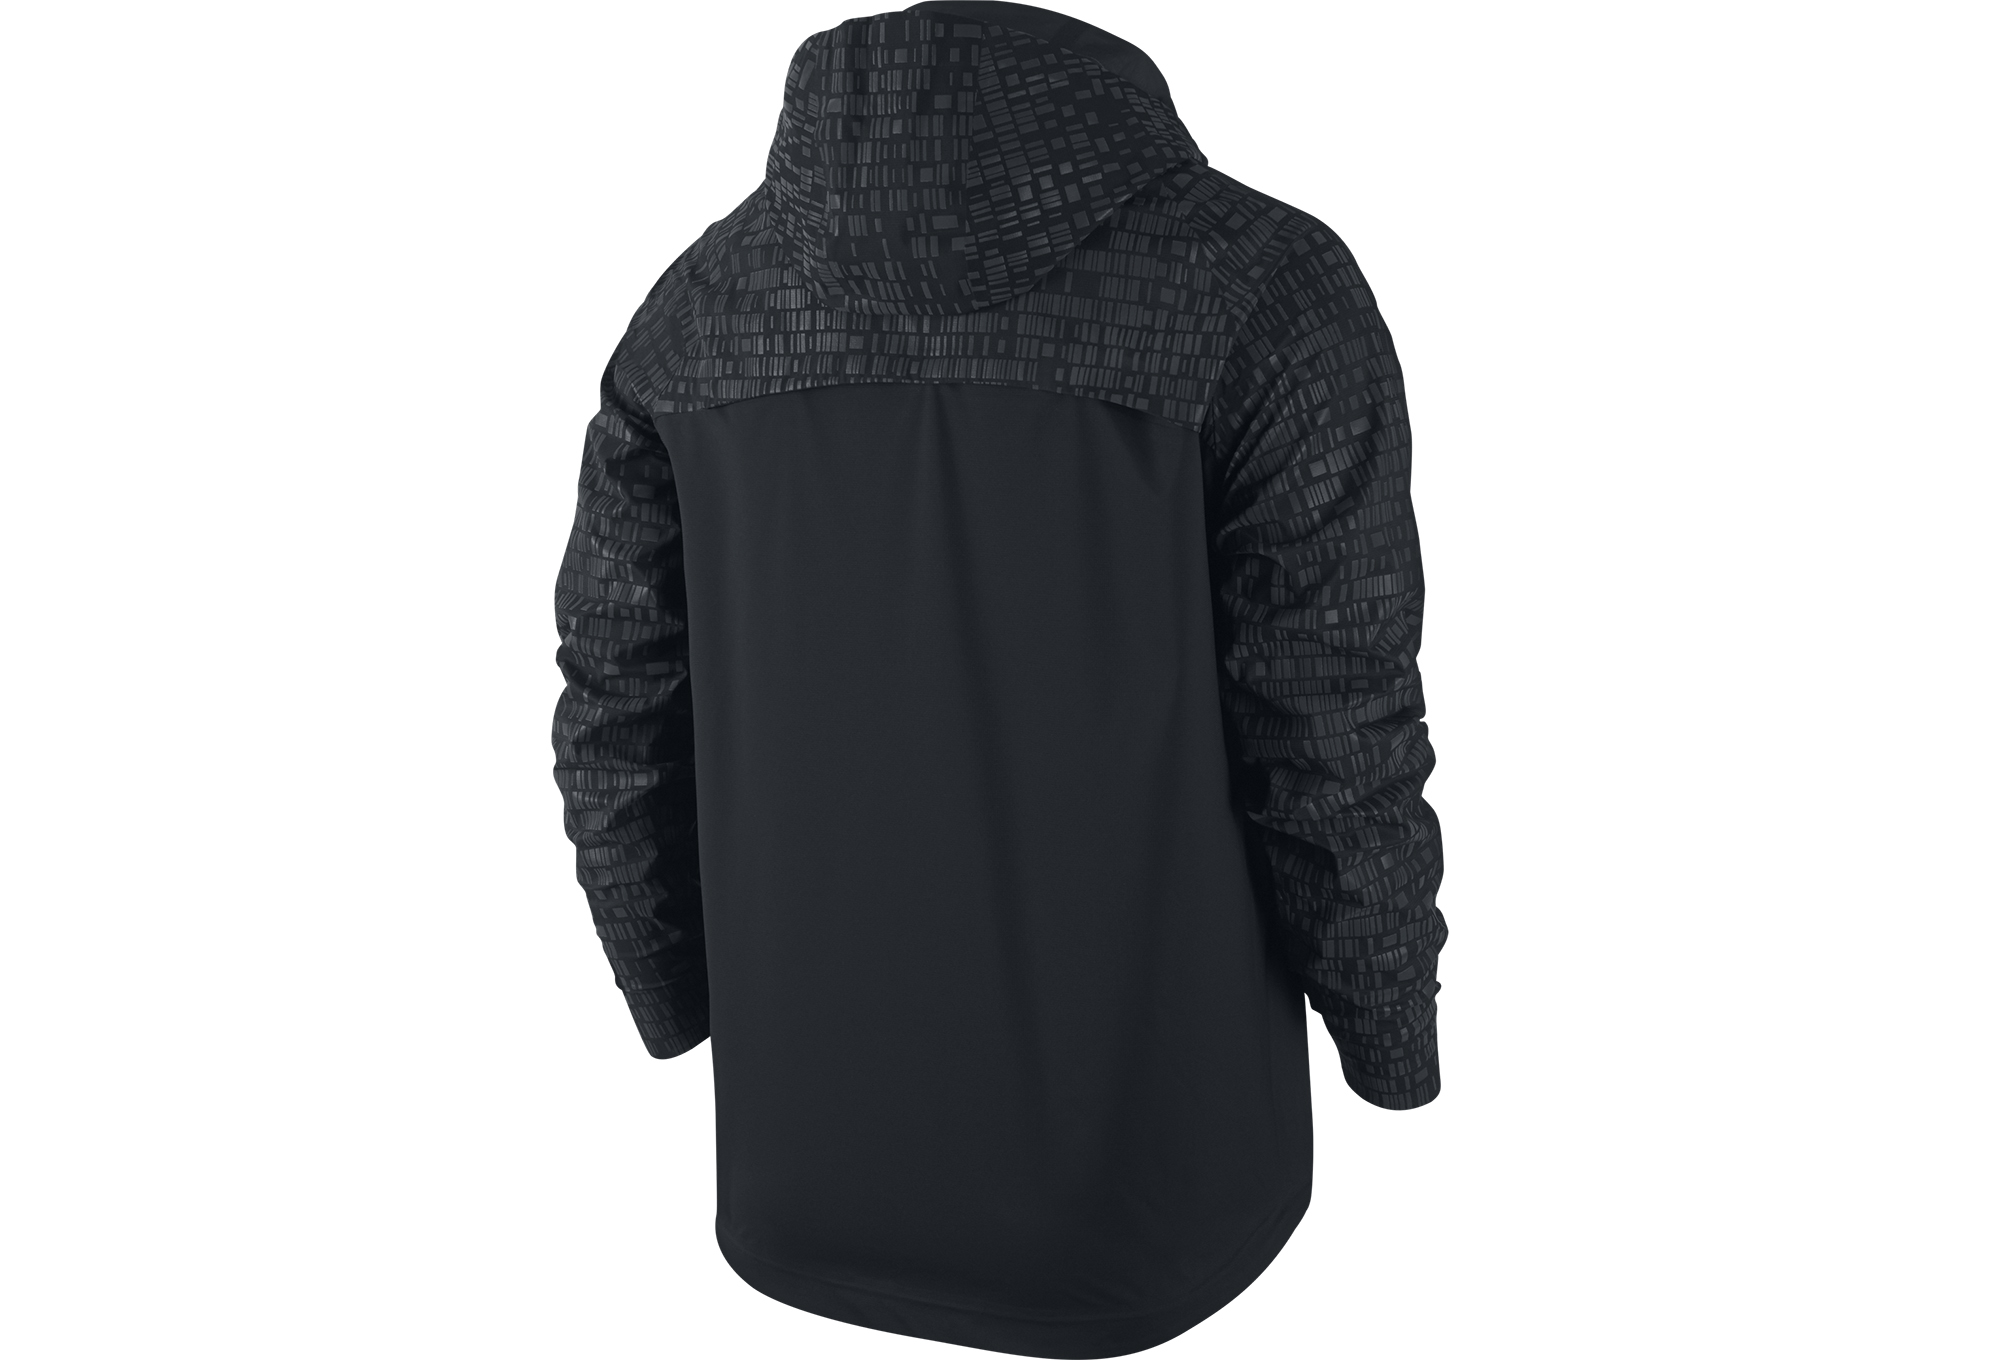 Noir Veste Nike Flash Imperméable Hypershield Homme jqAL54R3c